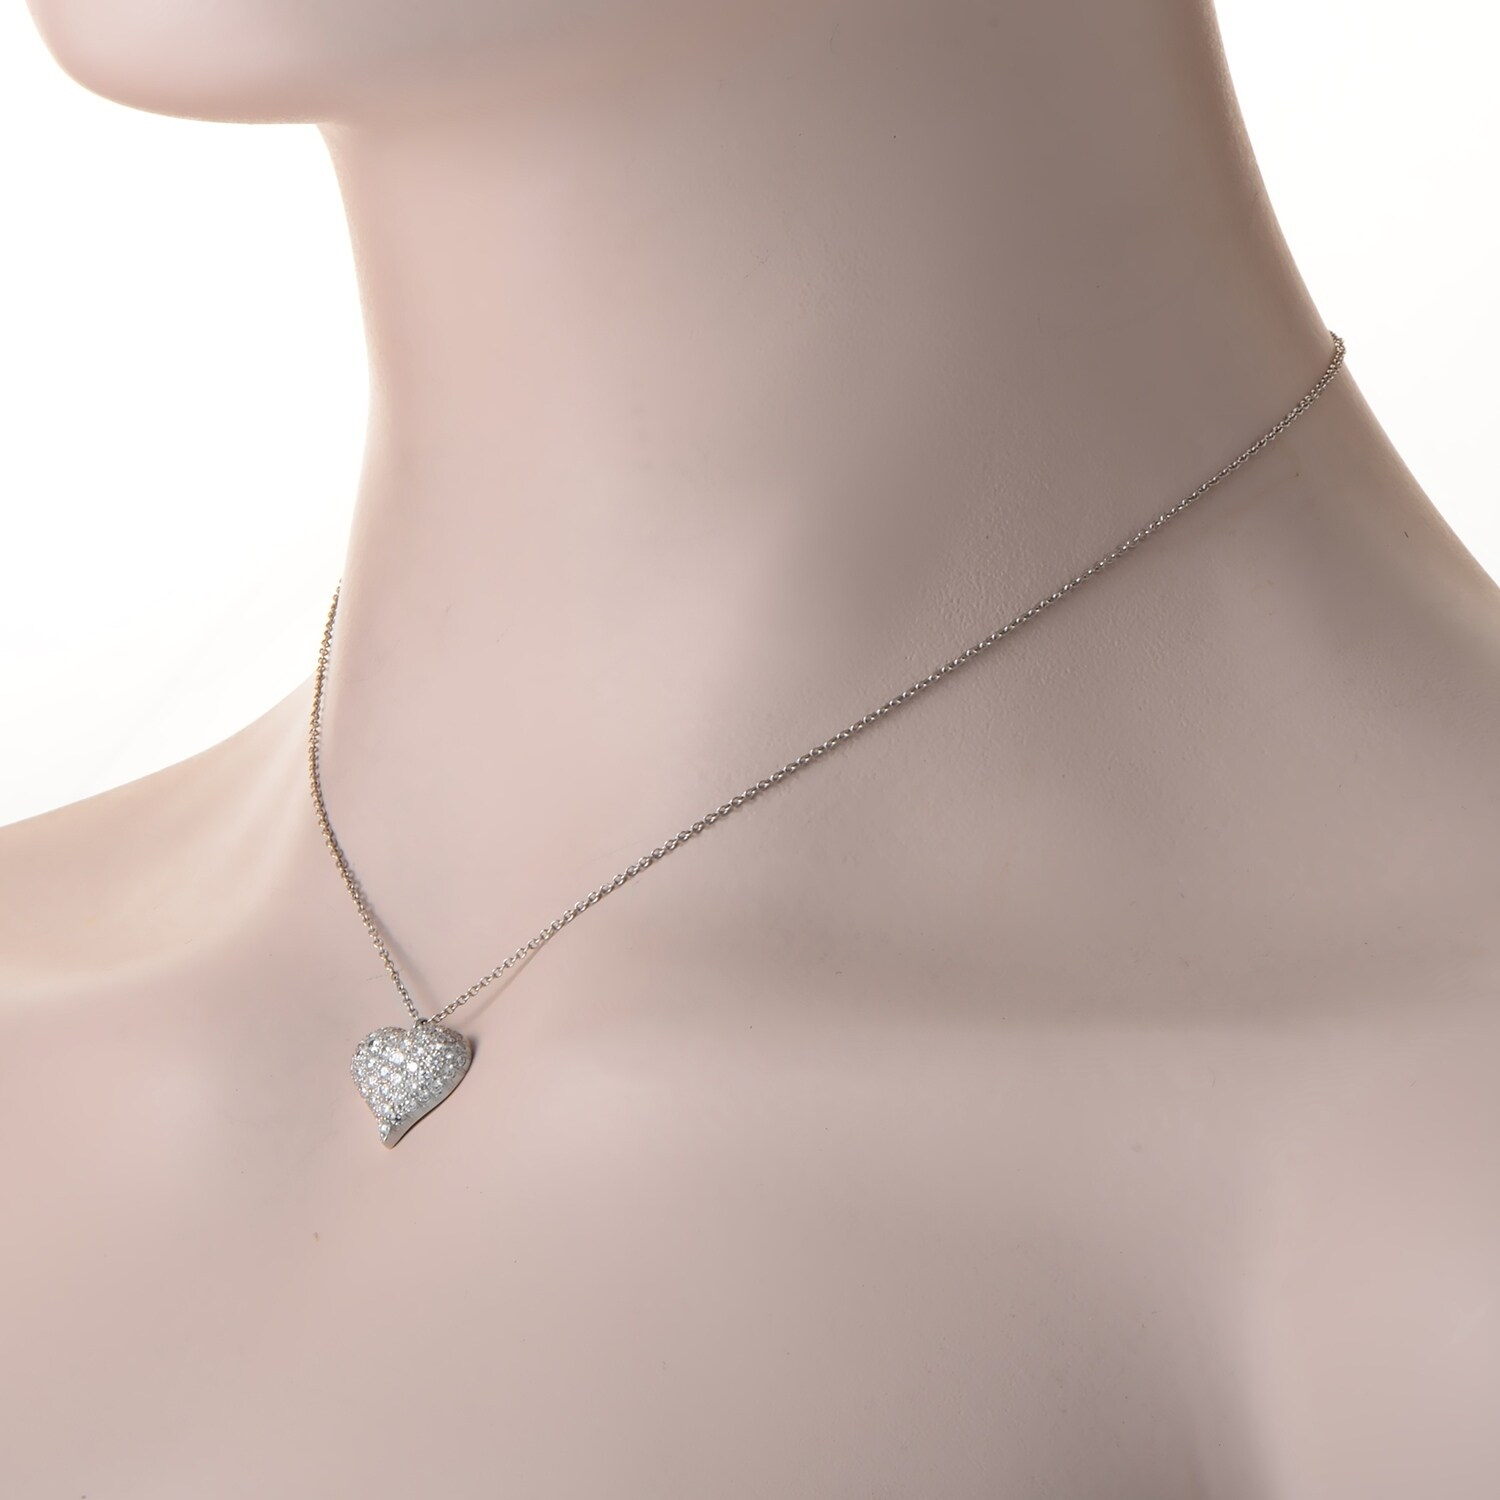 Shop pre owned tiffany co estate platinum diamond heart pendant shop pre owned tiffany co estate platinum diamond heart pendant necklace tif41116 9038 free shipping today overstock 20583010 aloadofball Choice Image